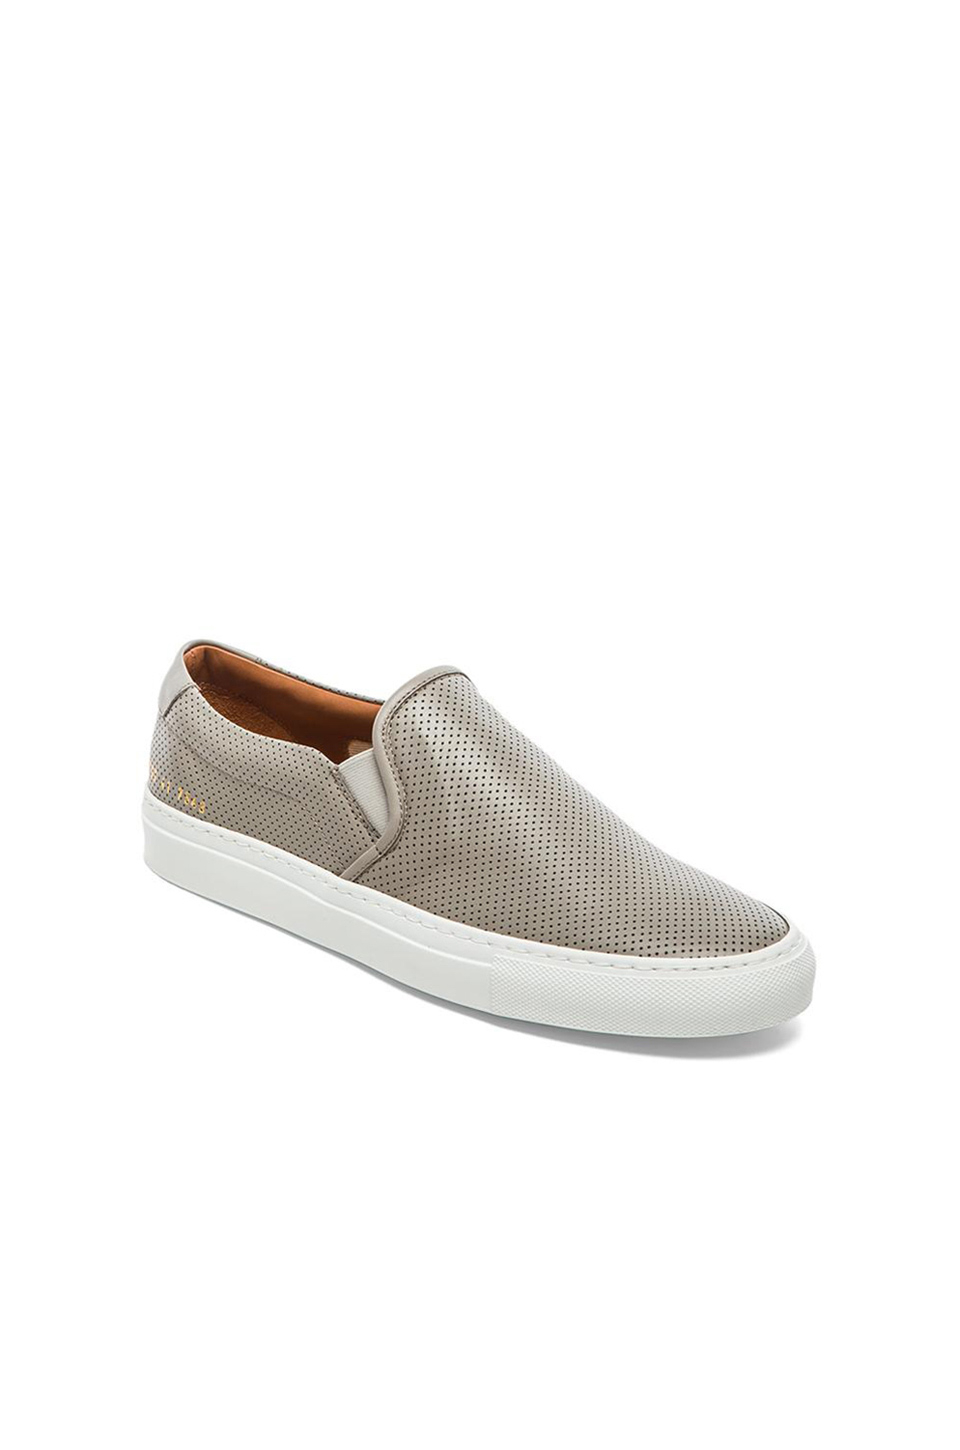 d5f98b13fa8a4 Lyst - Common Projects Perforated Slip-On Sneakers in Gray for Men